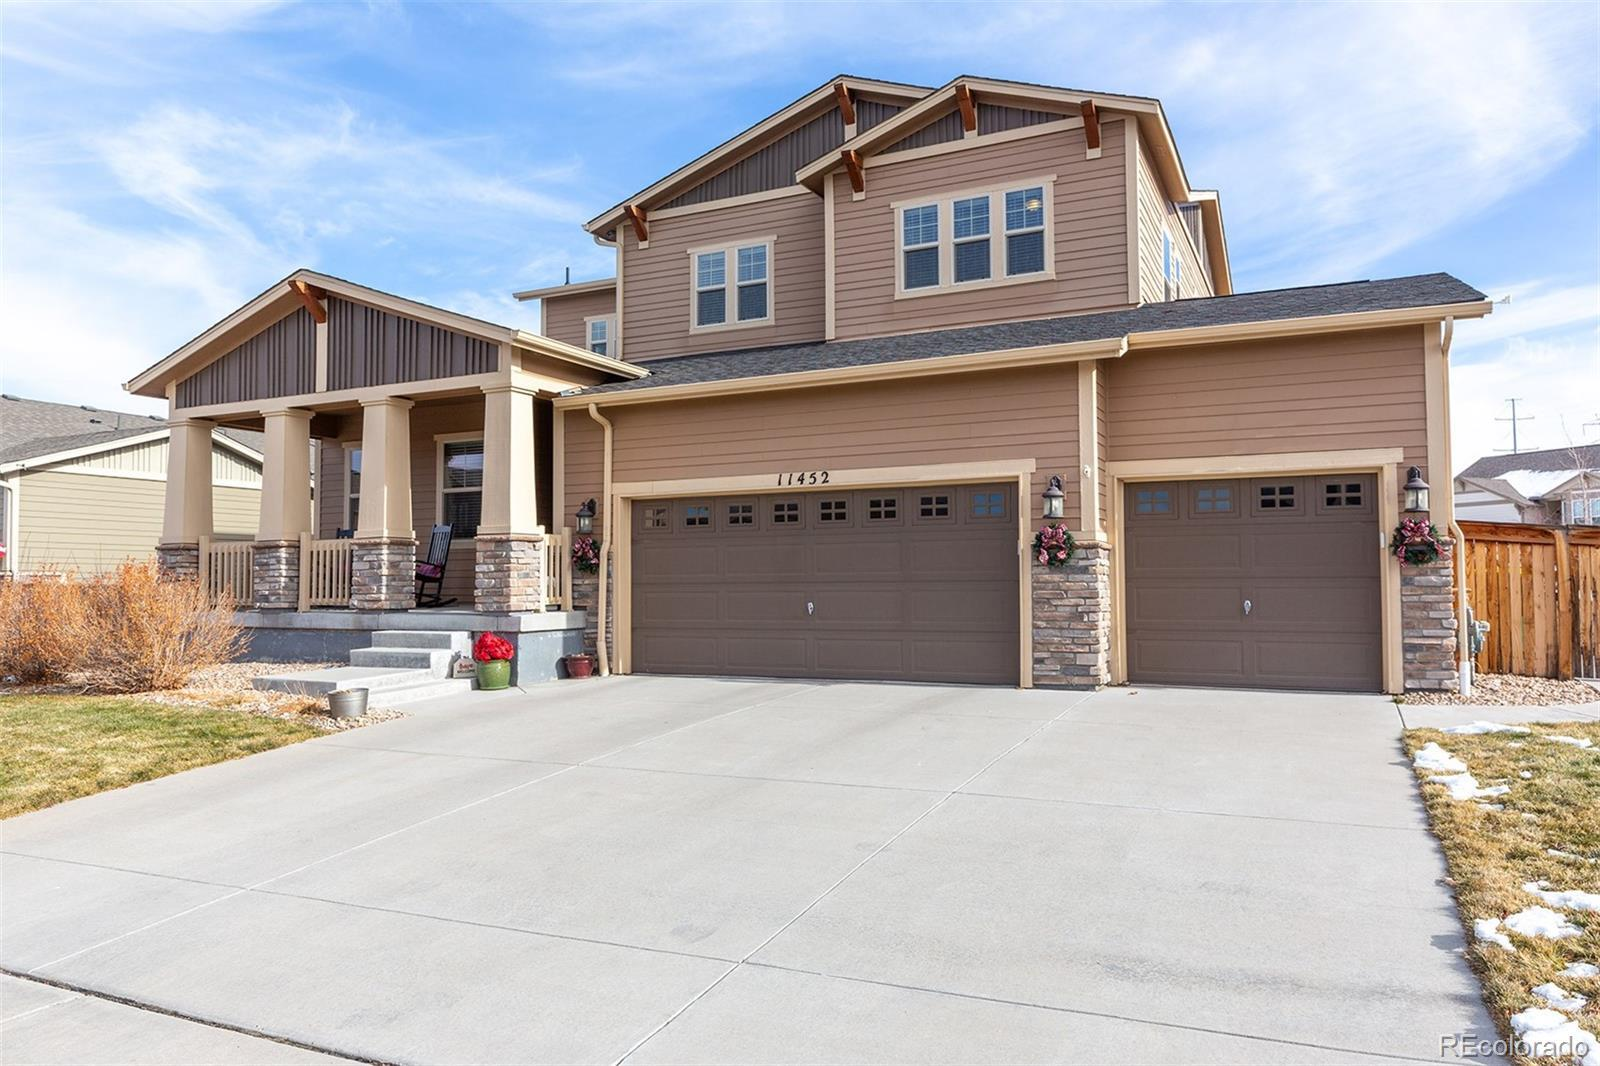 11452 Lovage Way, Parker, CO 80134 - #: 3762997